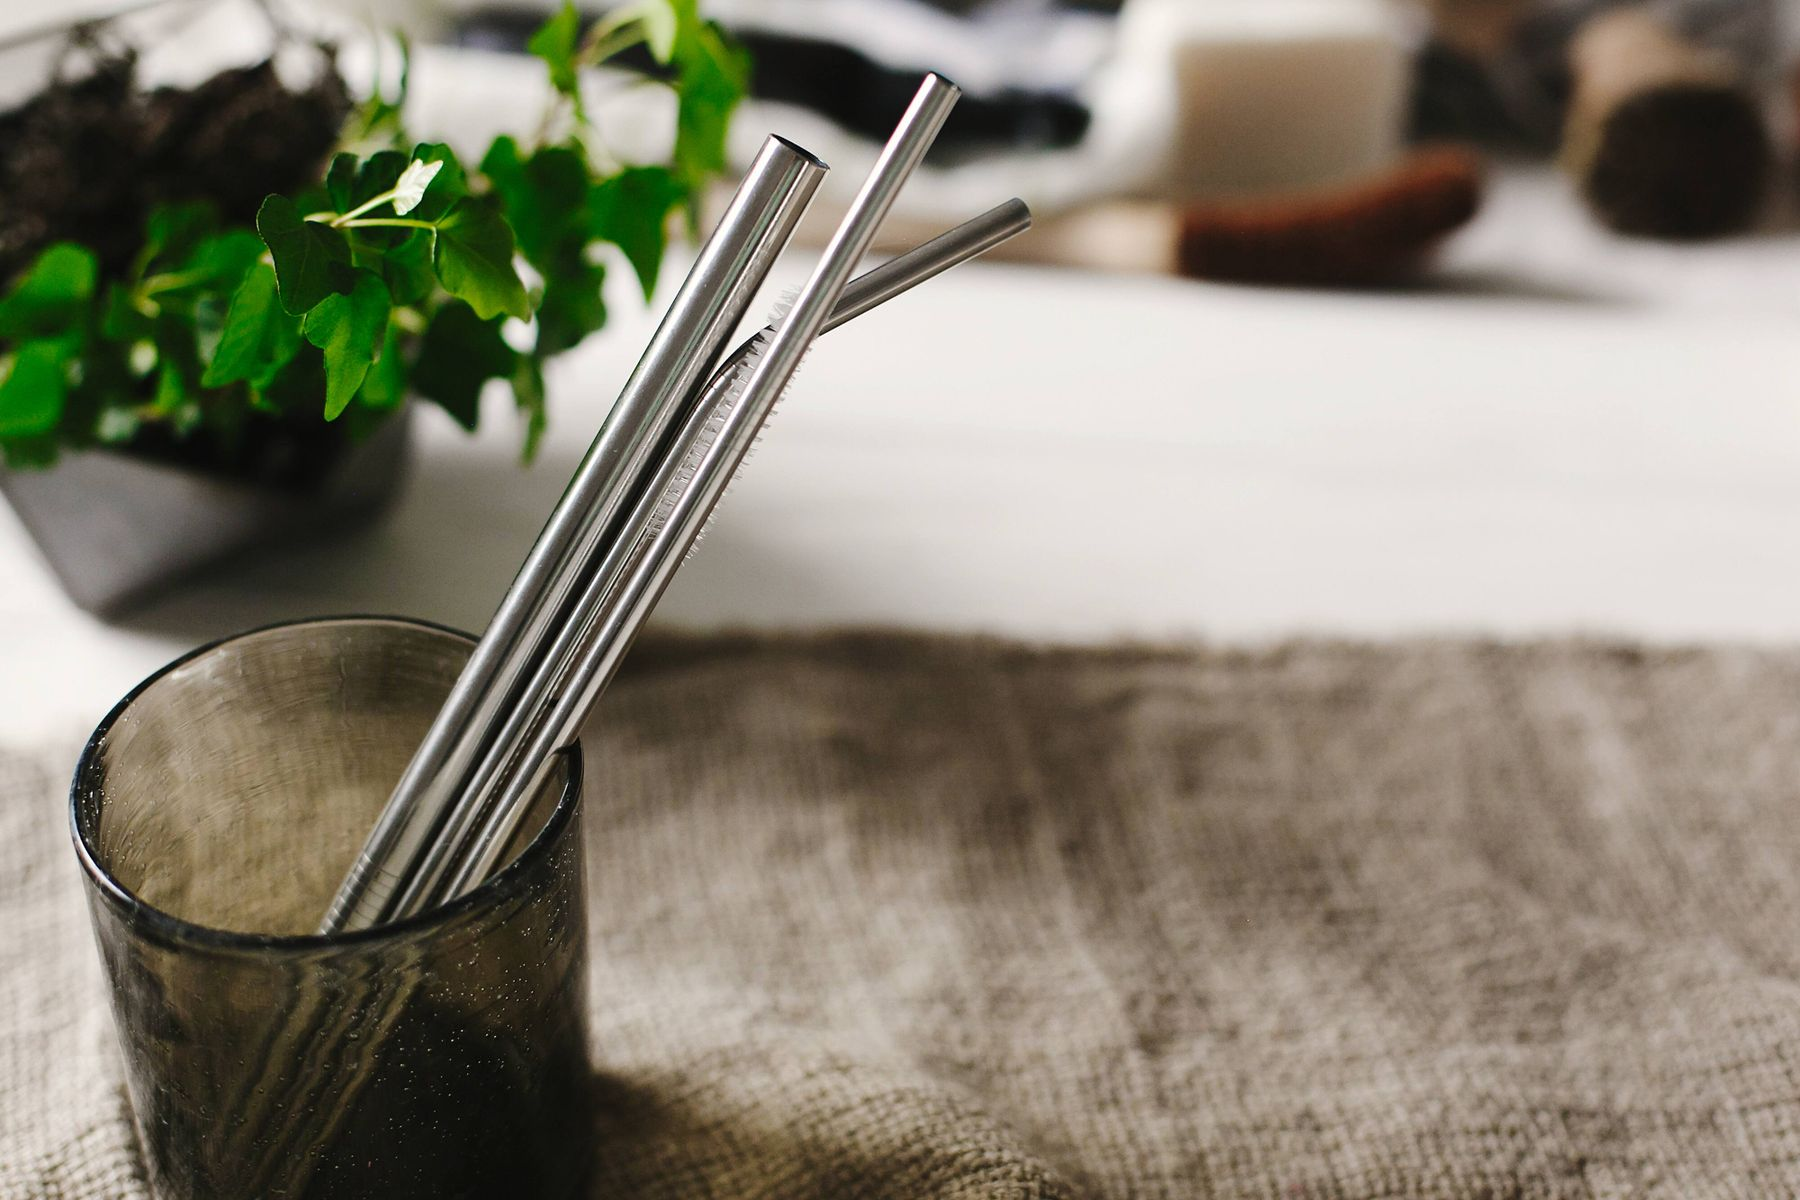 glass beaker with stainless steel straws